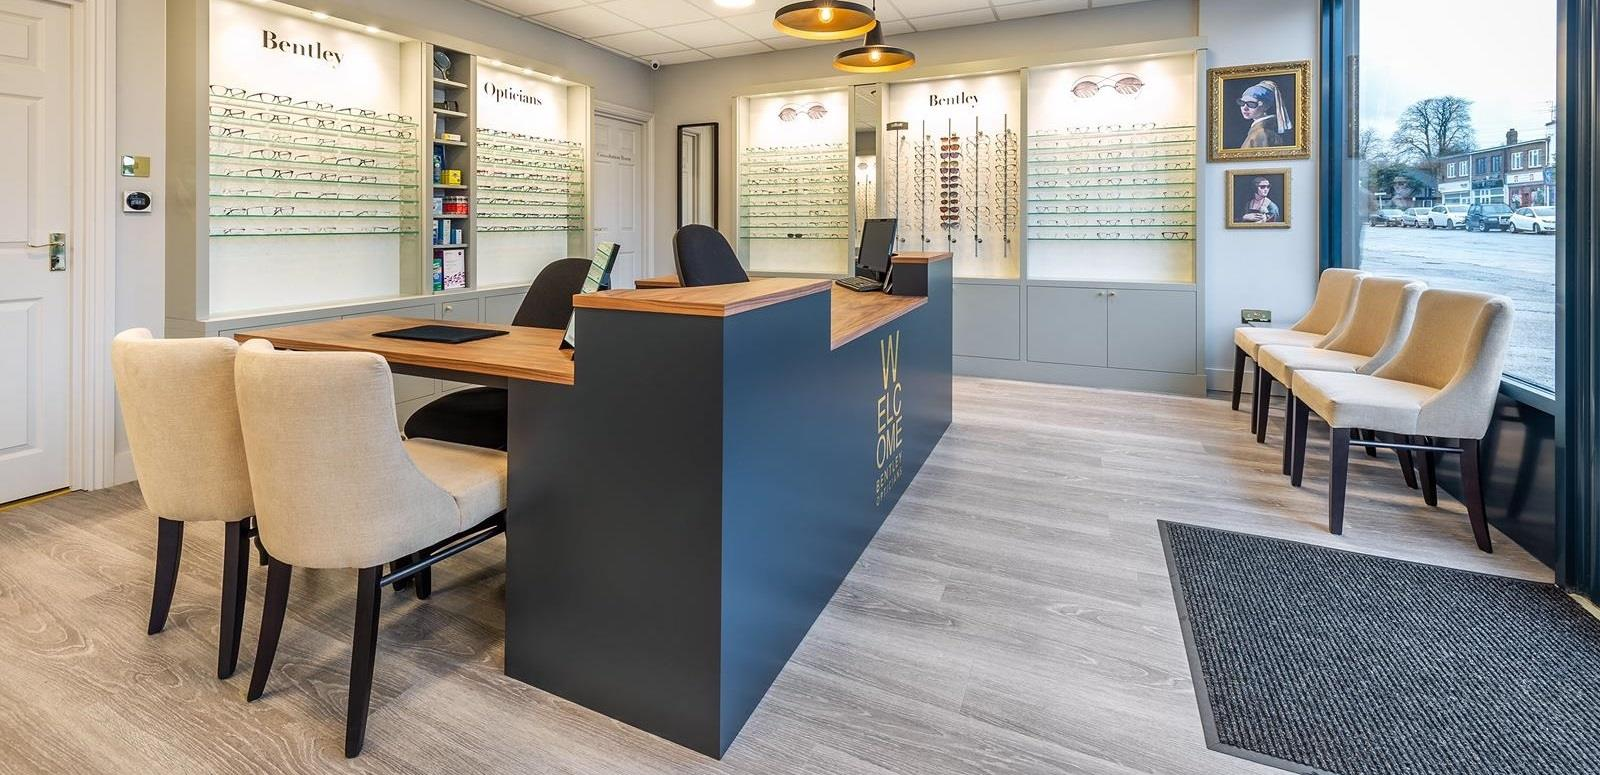 bentley opticians essex